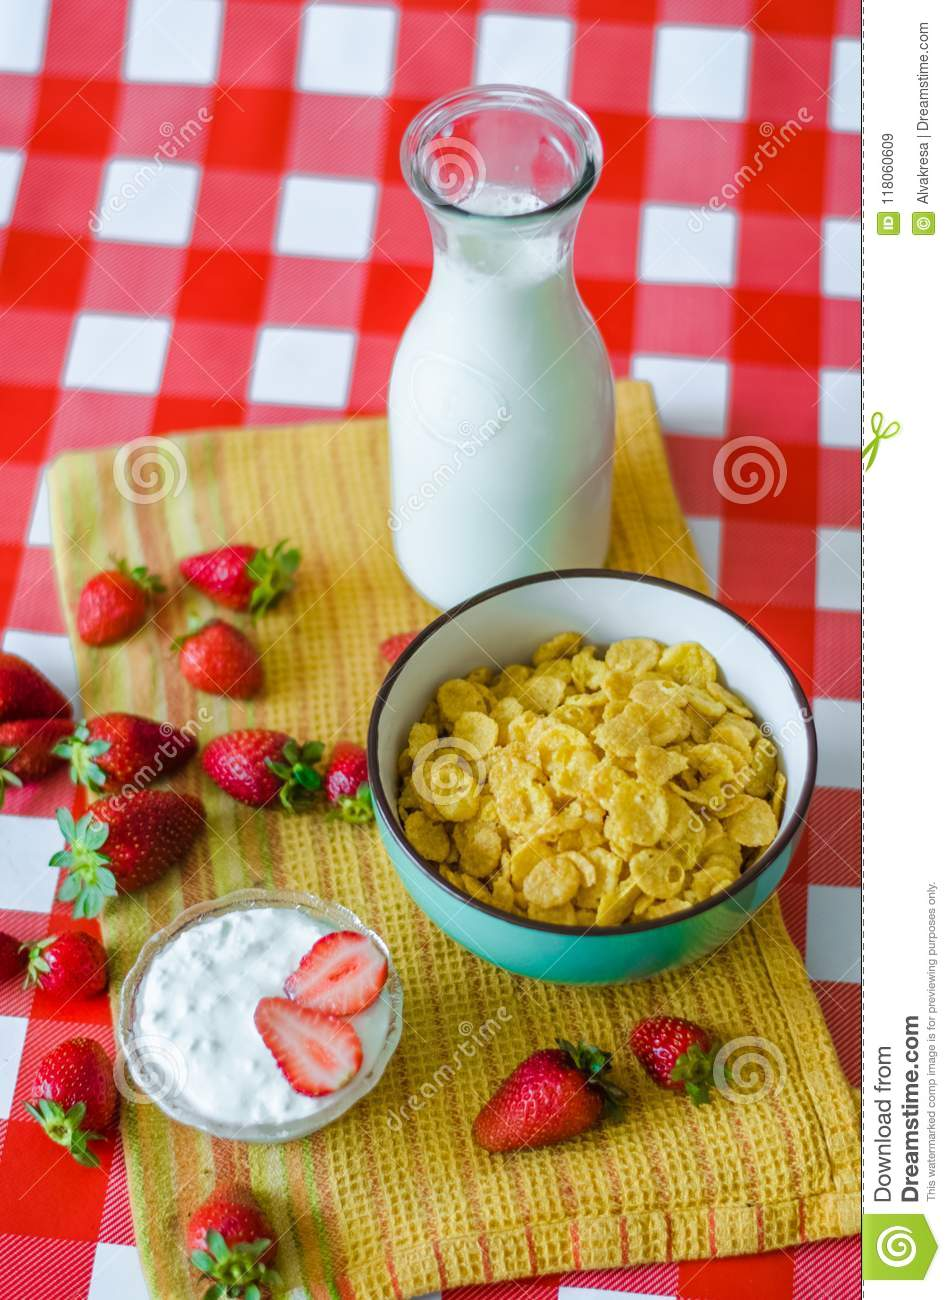 Tasty breakfast, fresh milk in glass bottle, cereals with honey and nuts in green ceramic bowl, tasty yogurt in small glass bowl